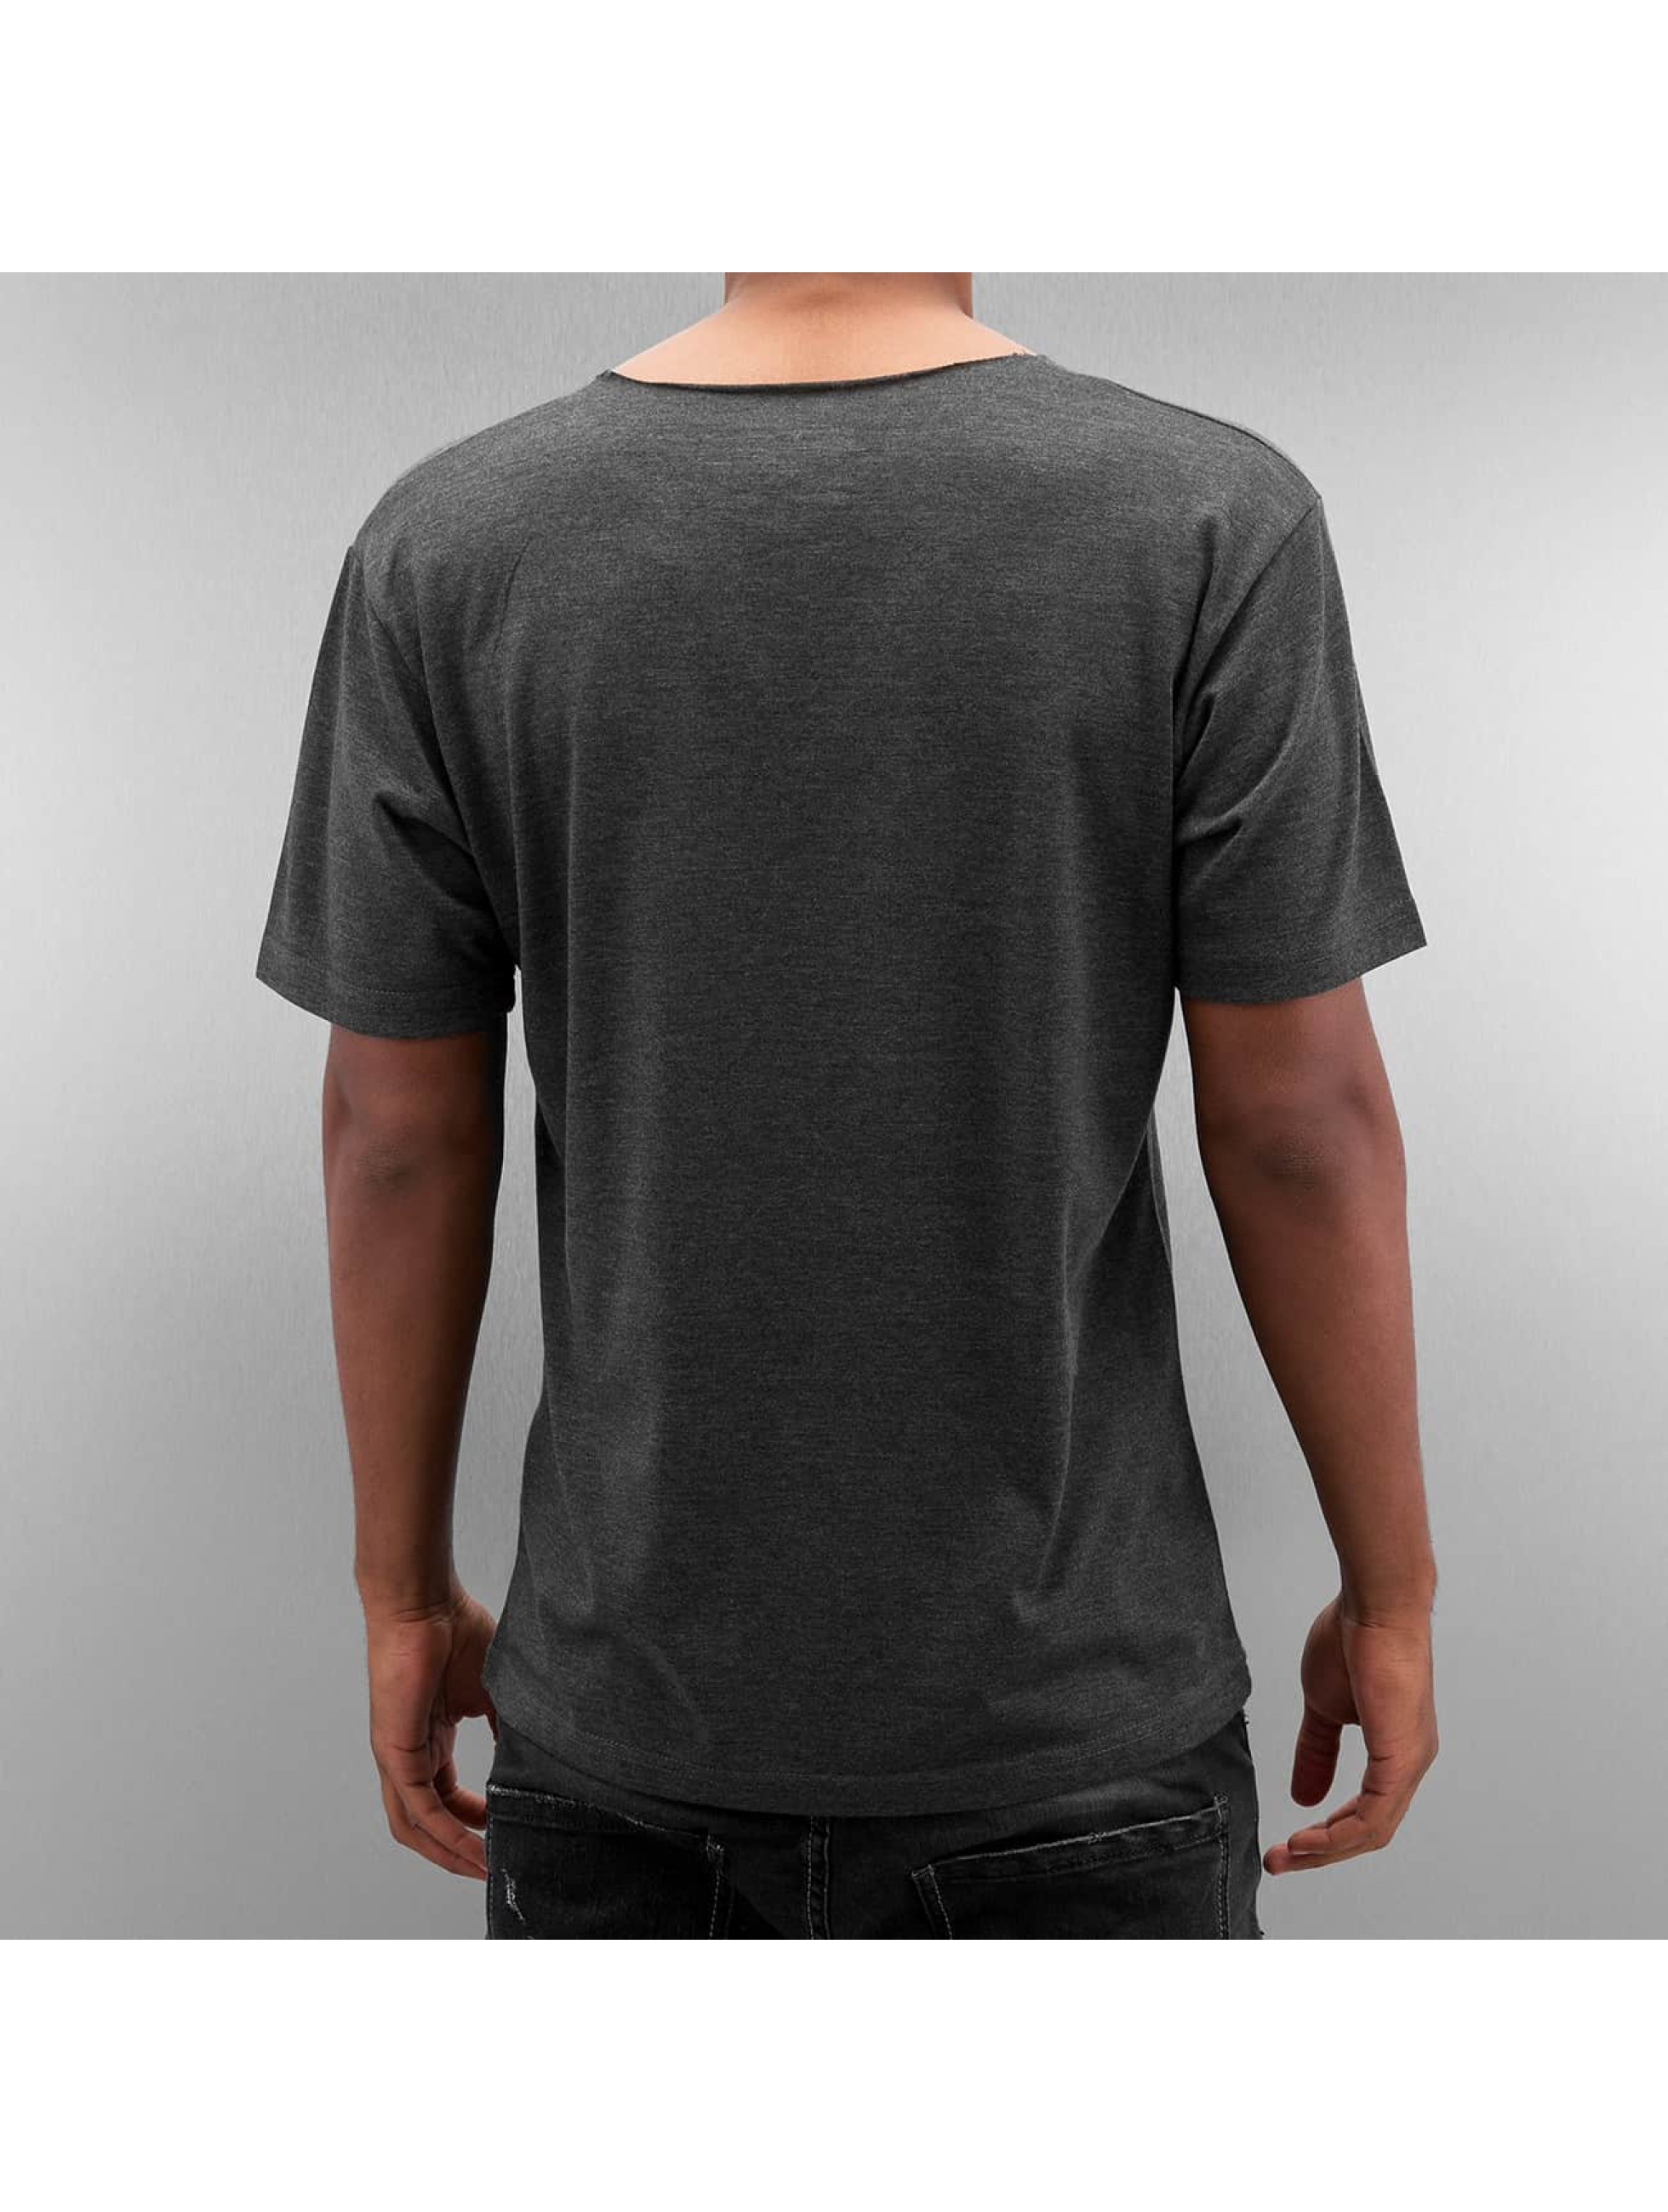 DEF T-Shirt Drop gray